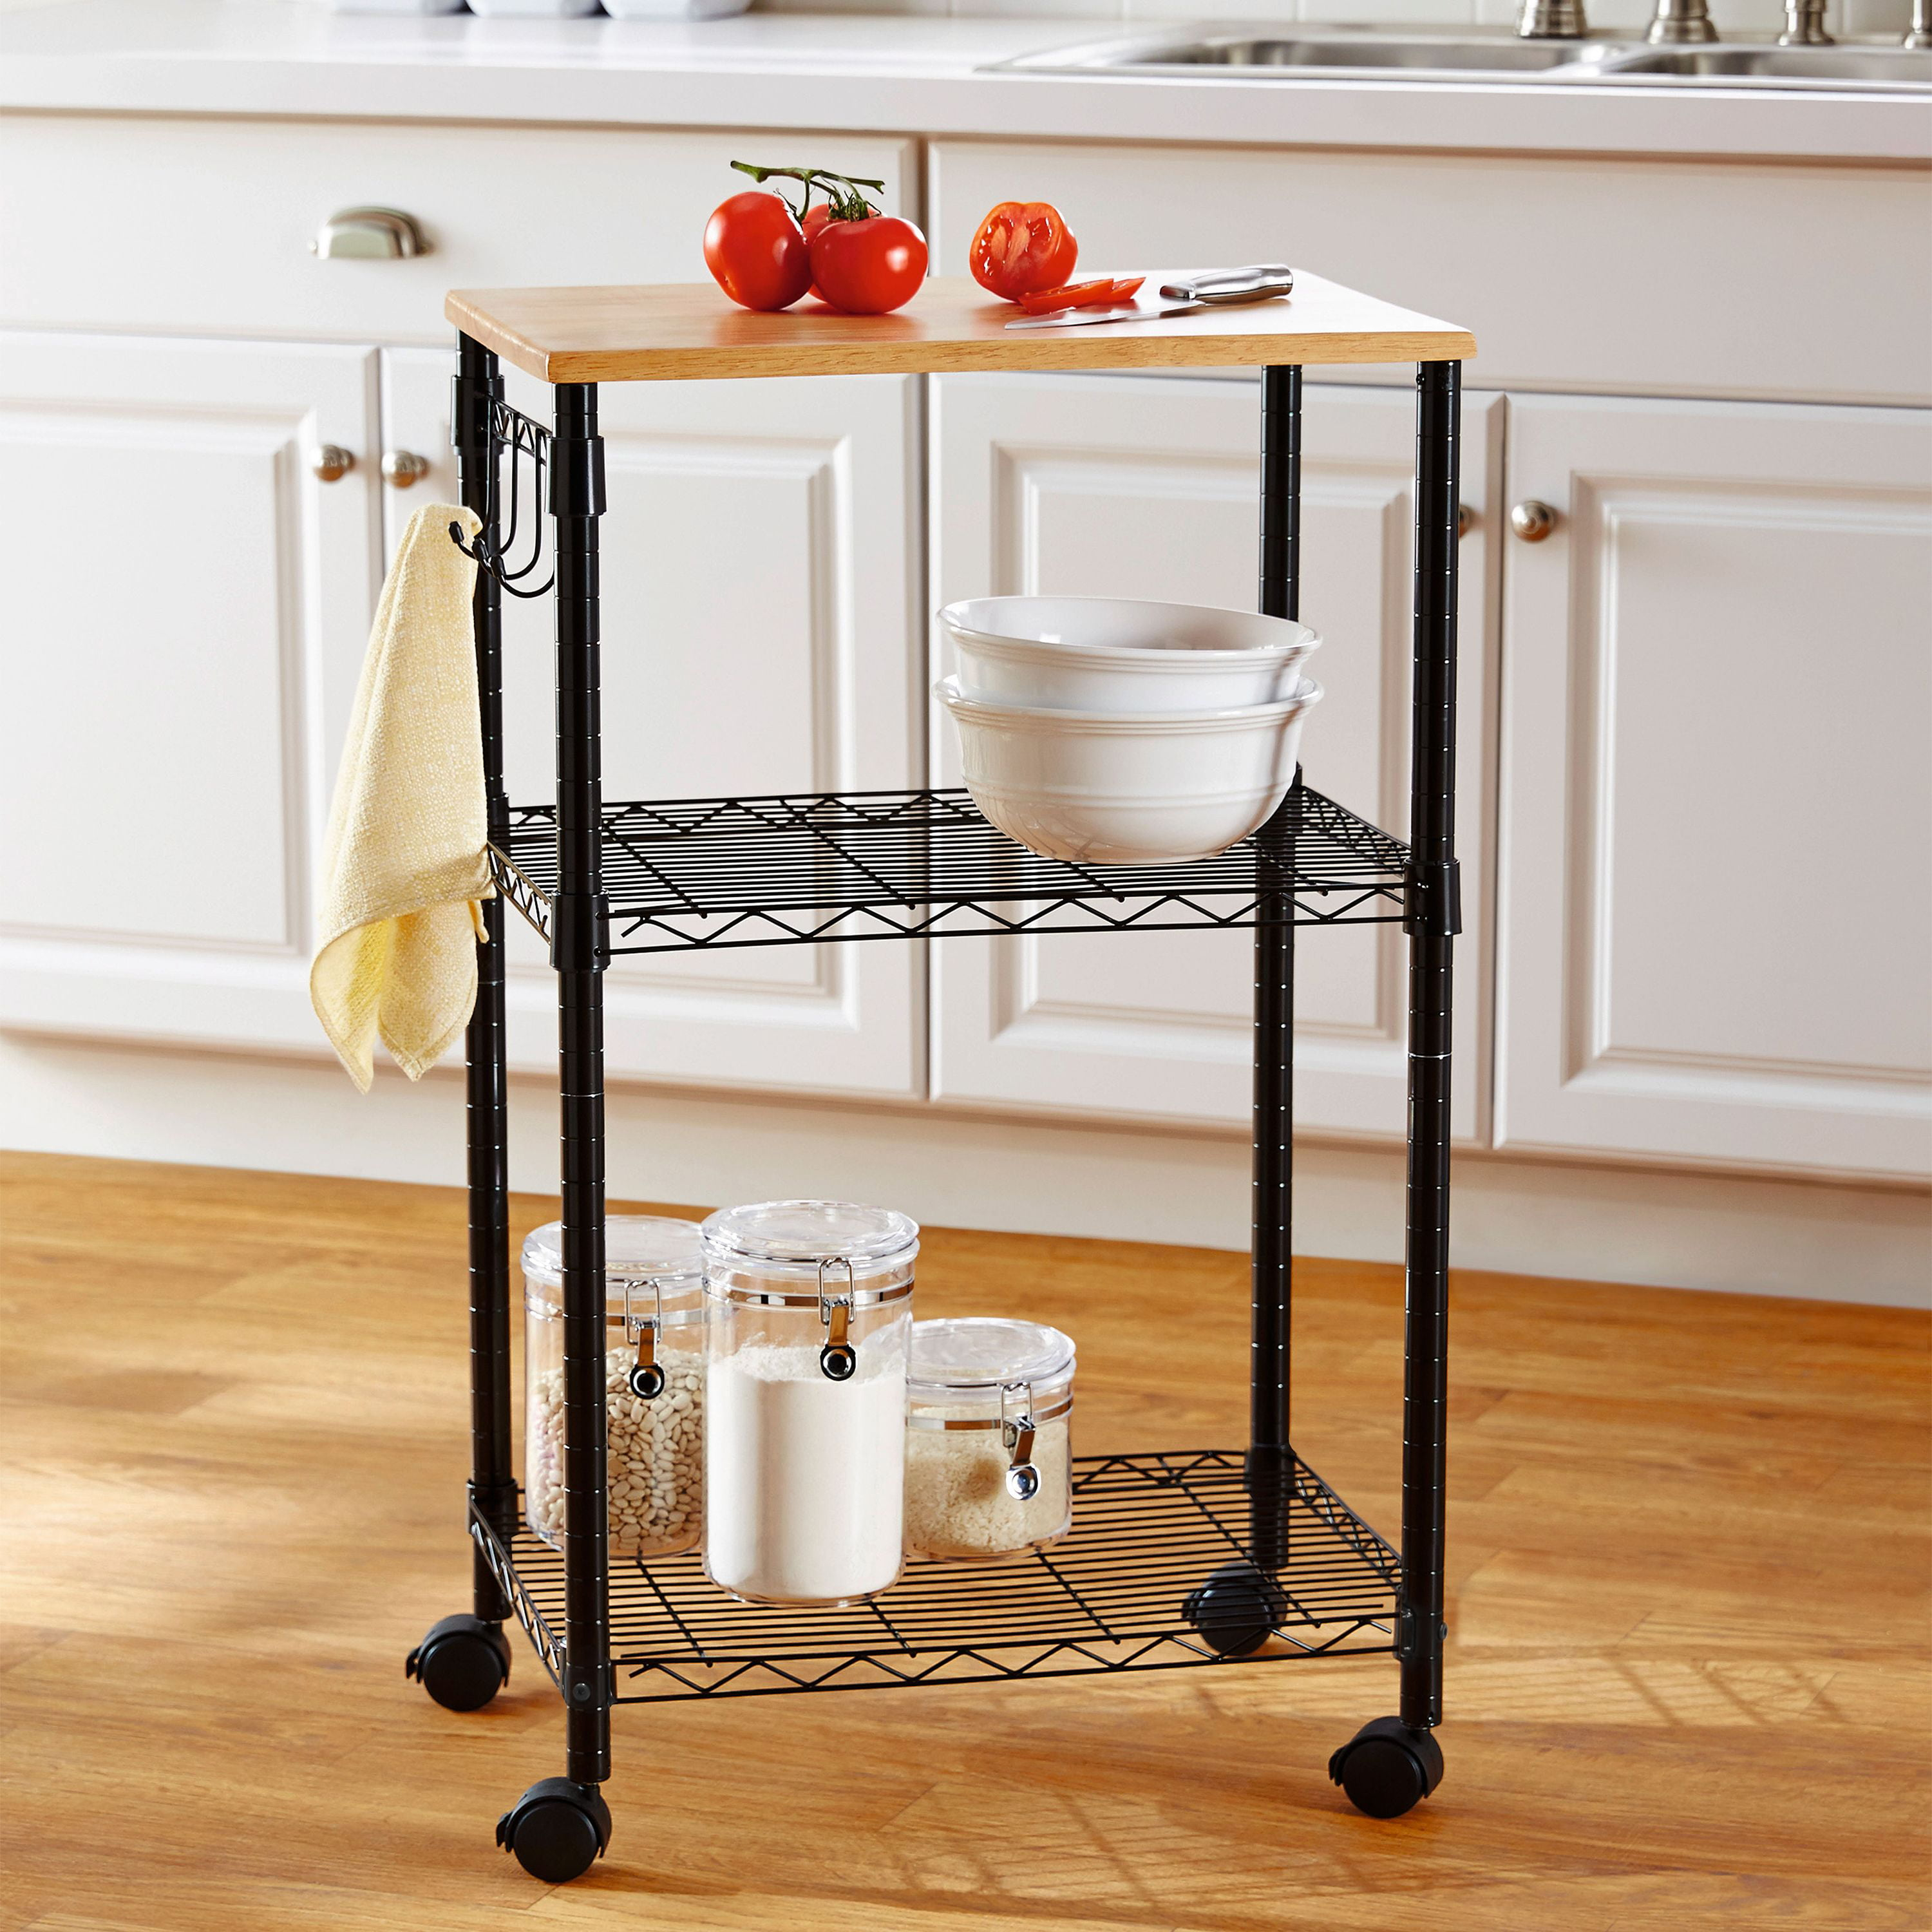 Mainstays Kitchen Cart Walmart